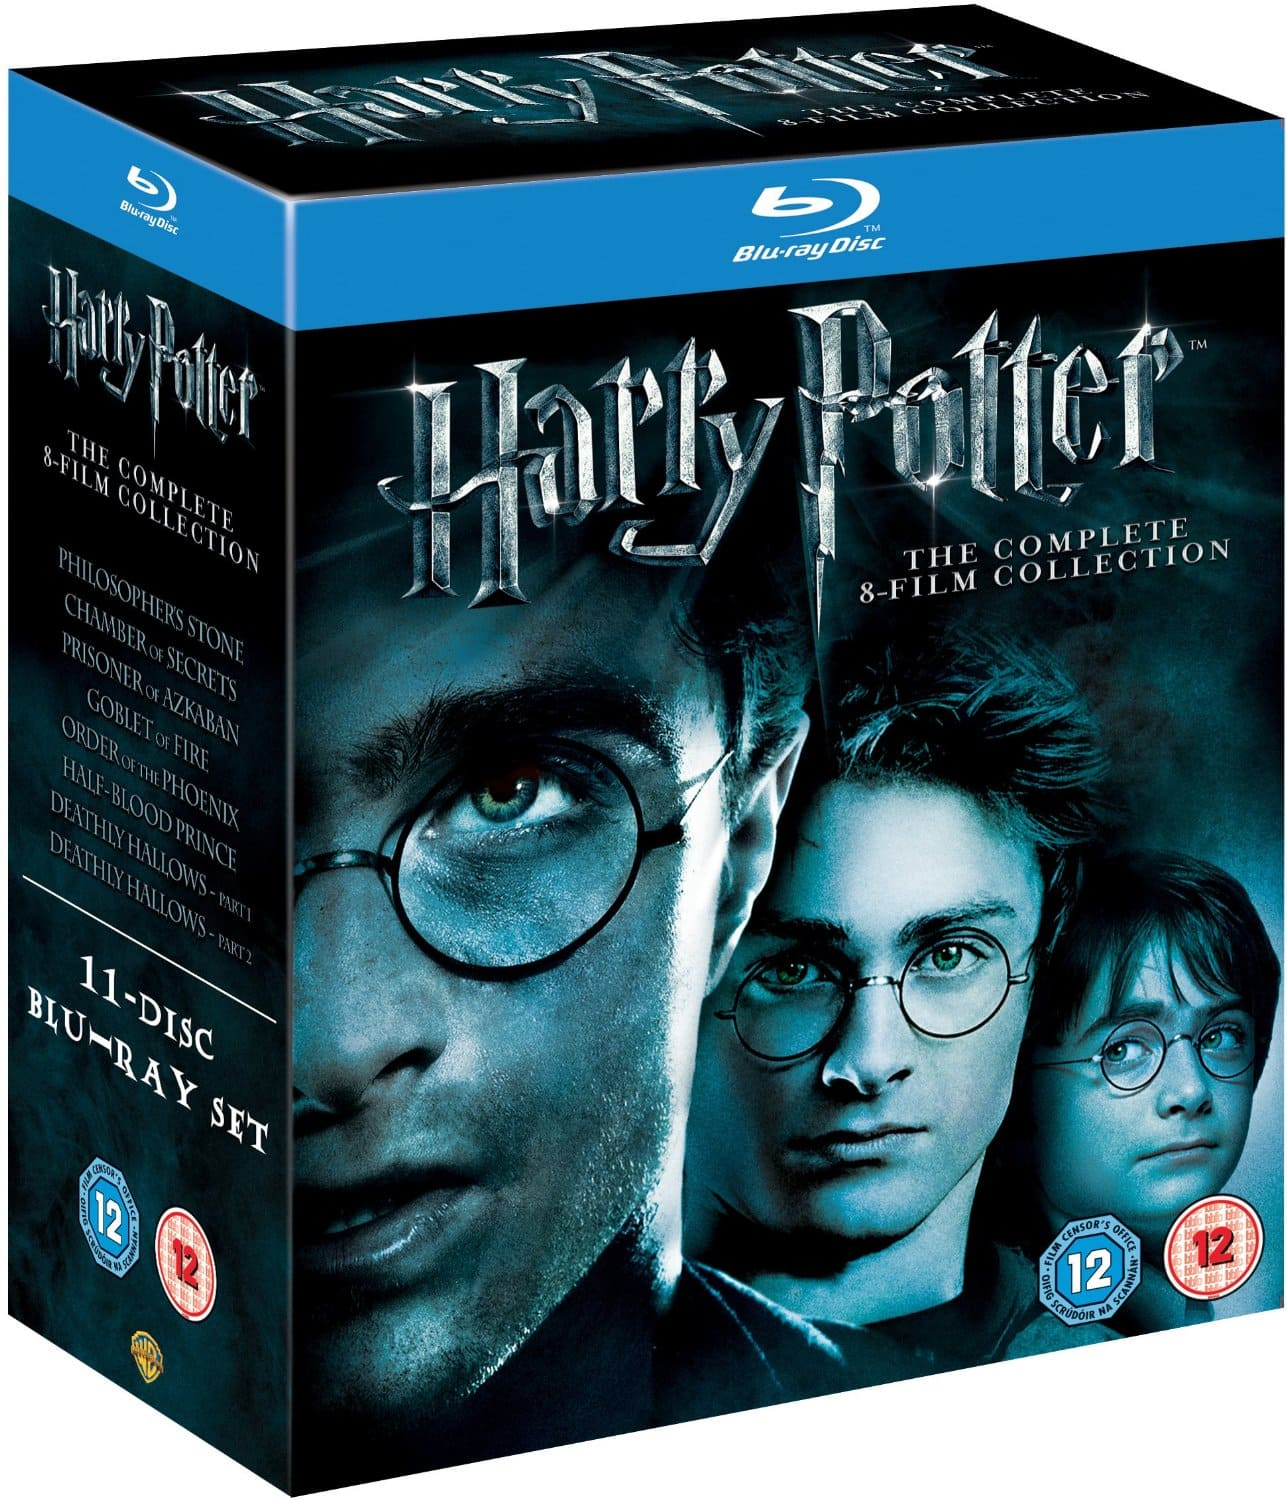 Harry Potter: The Complete 8-Film Collection (Region Free Blu-ray)  $30 + Free Shipping